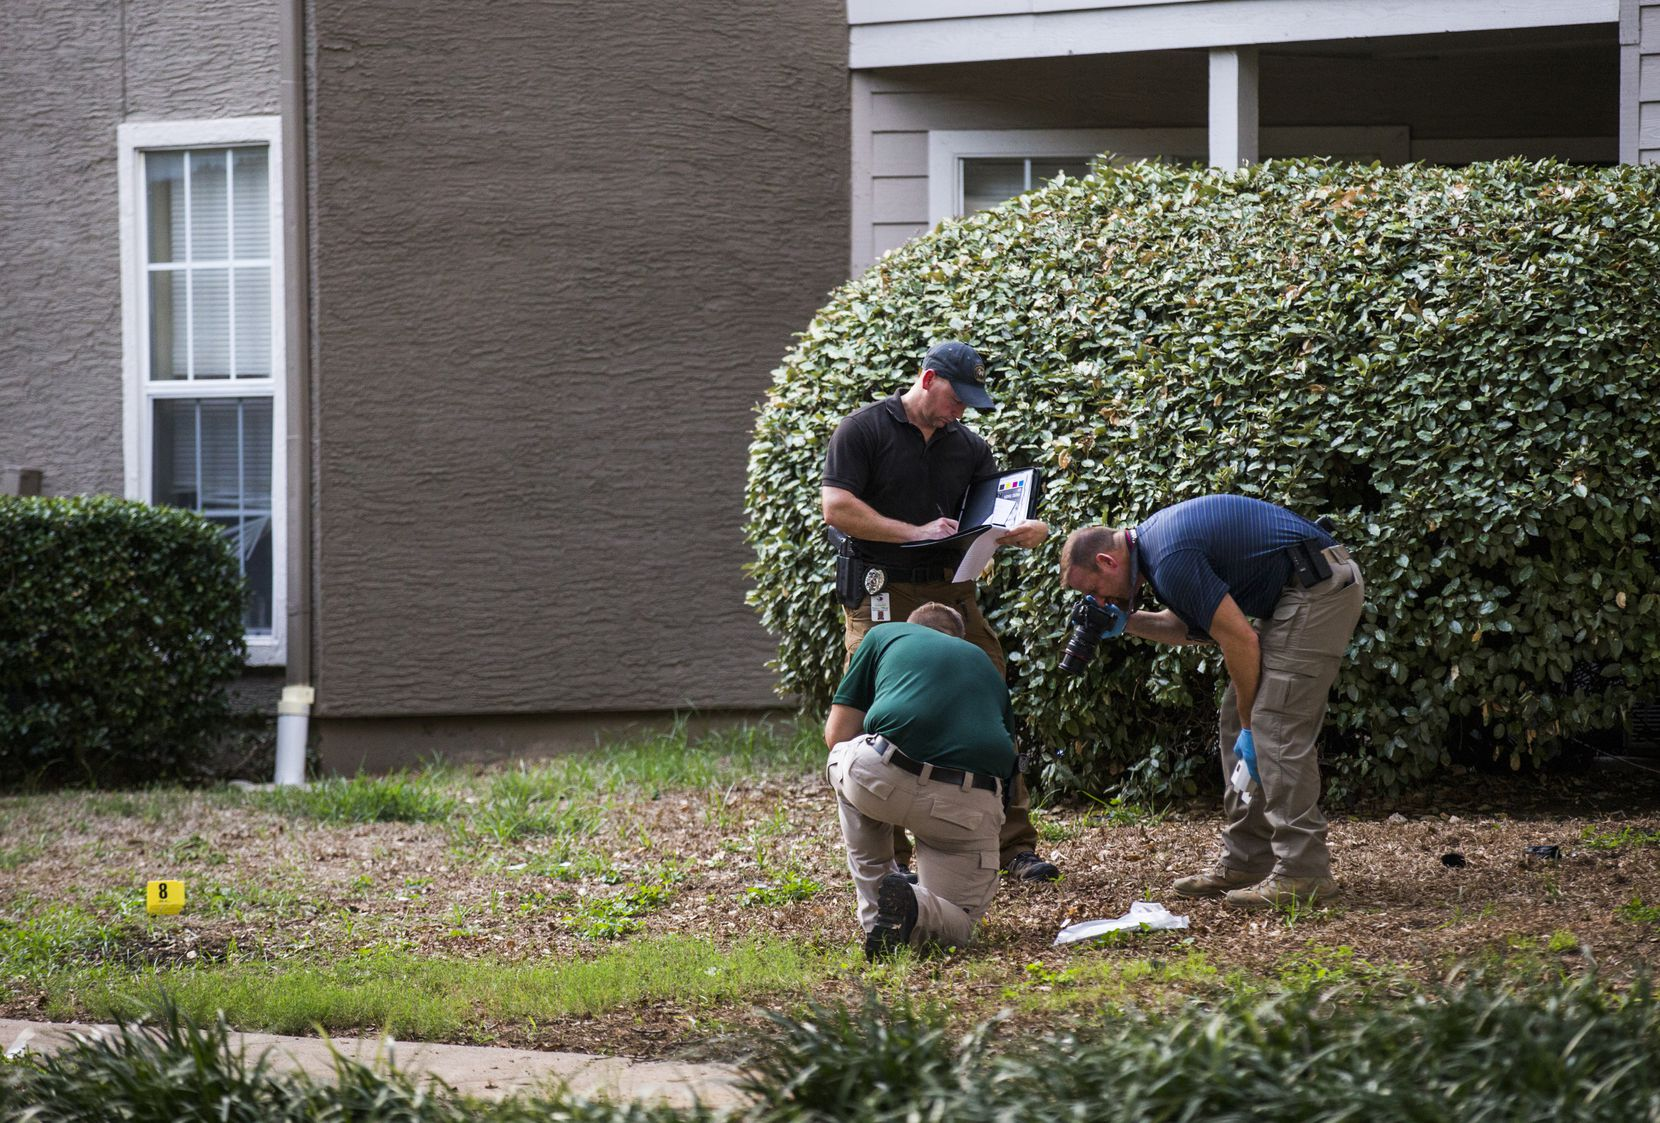 Lewisville police officers investigate a scene where a man fatally stabbed a toddler on Sunday. The man was then shot in the leg by a neighbor, ending the assault.